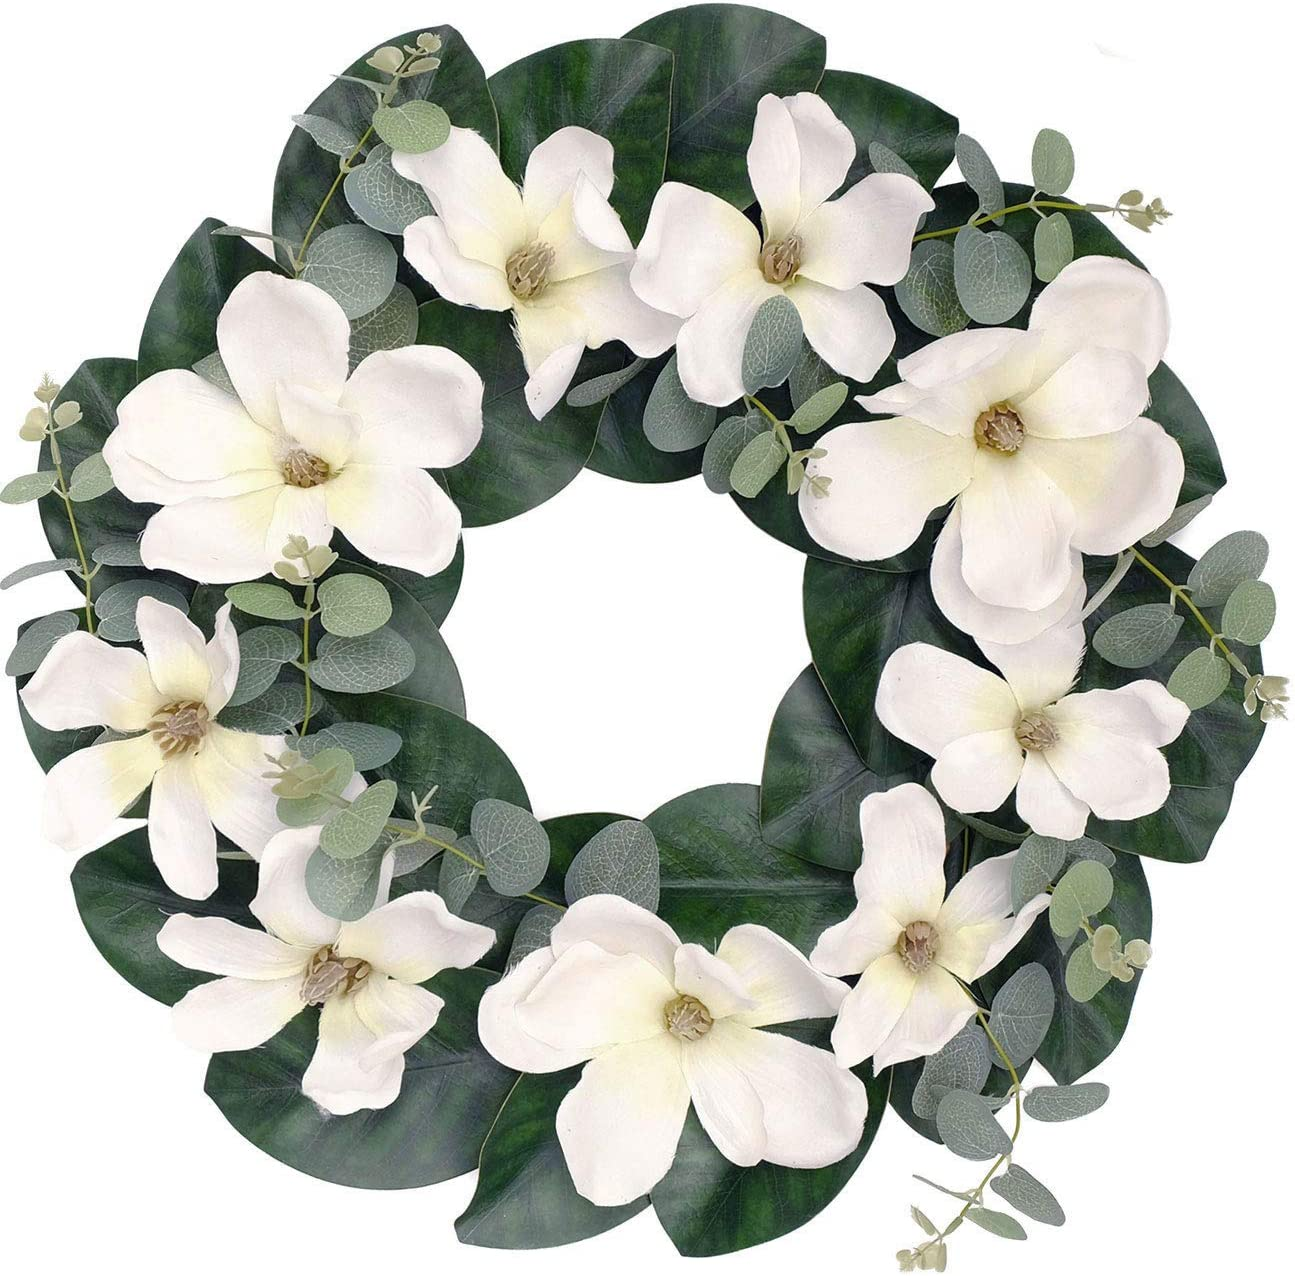 Bibelot 20 Inch White Magnolia Wreath Eucalyptus Leaves Magnolia Leaves Wreath for Front Door Indoor or Outdoor Wall Wedding Party Home Decor Office Housewarming Gift